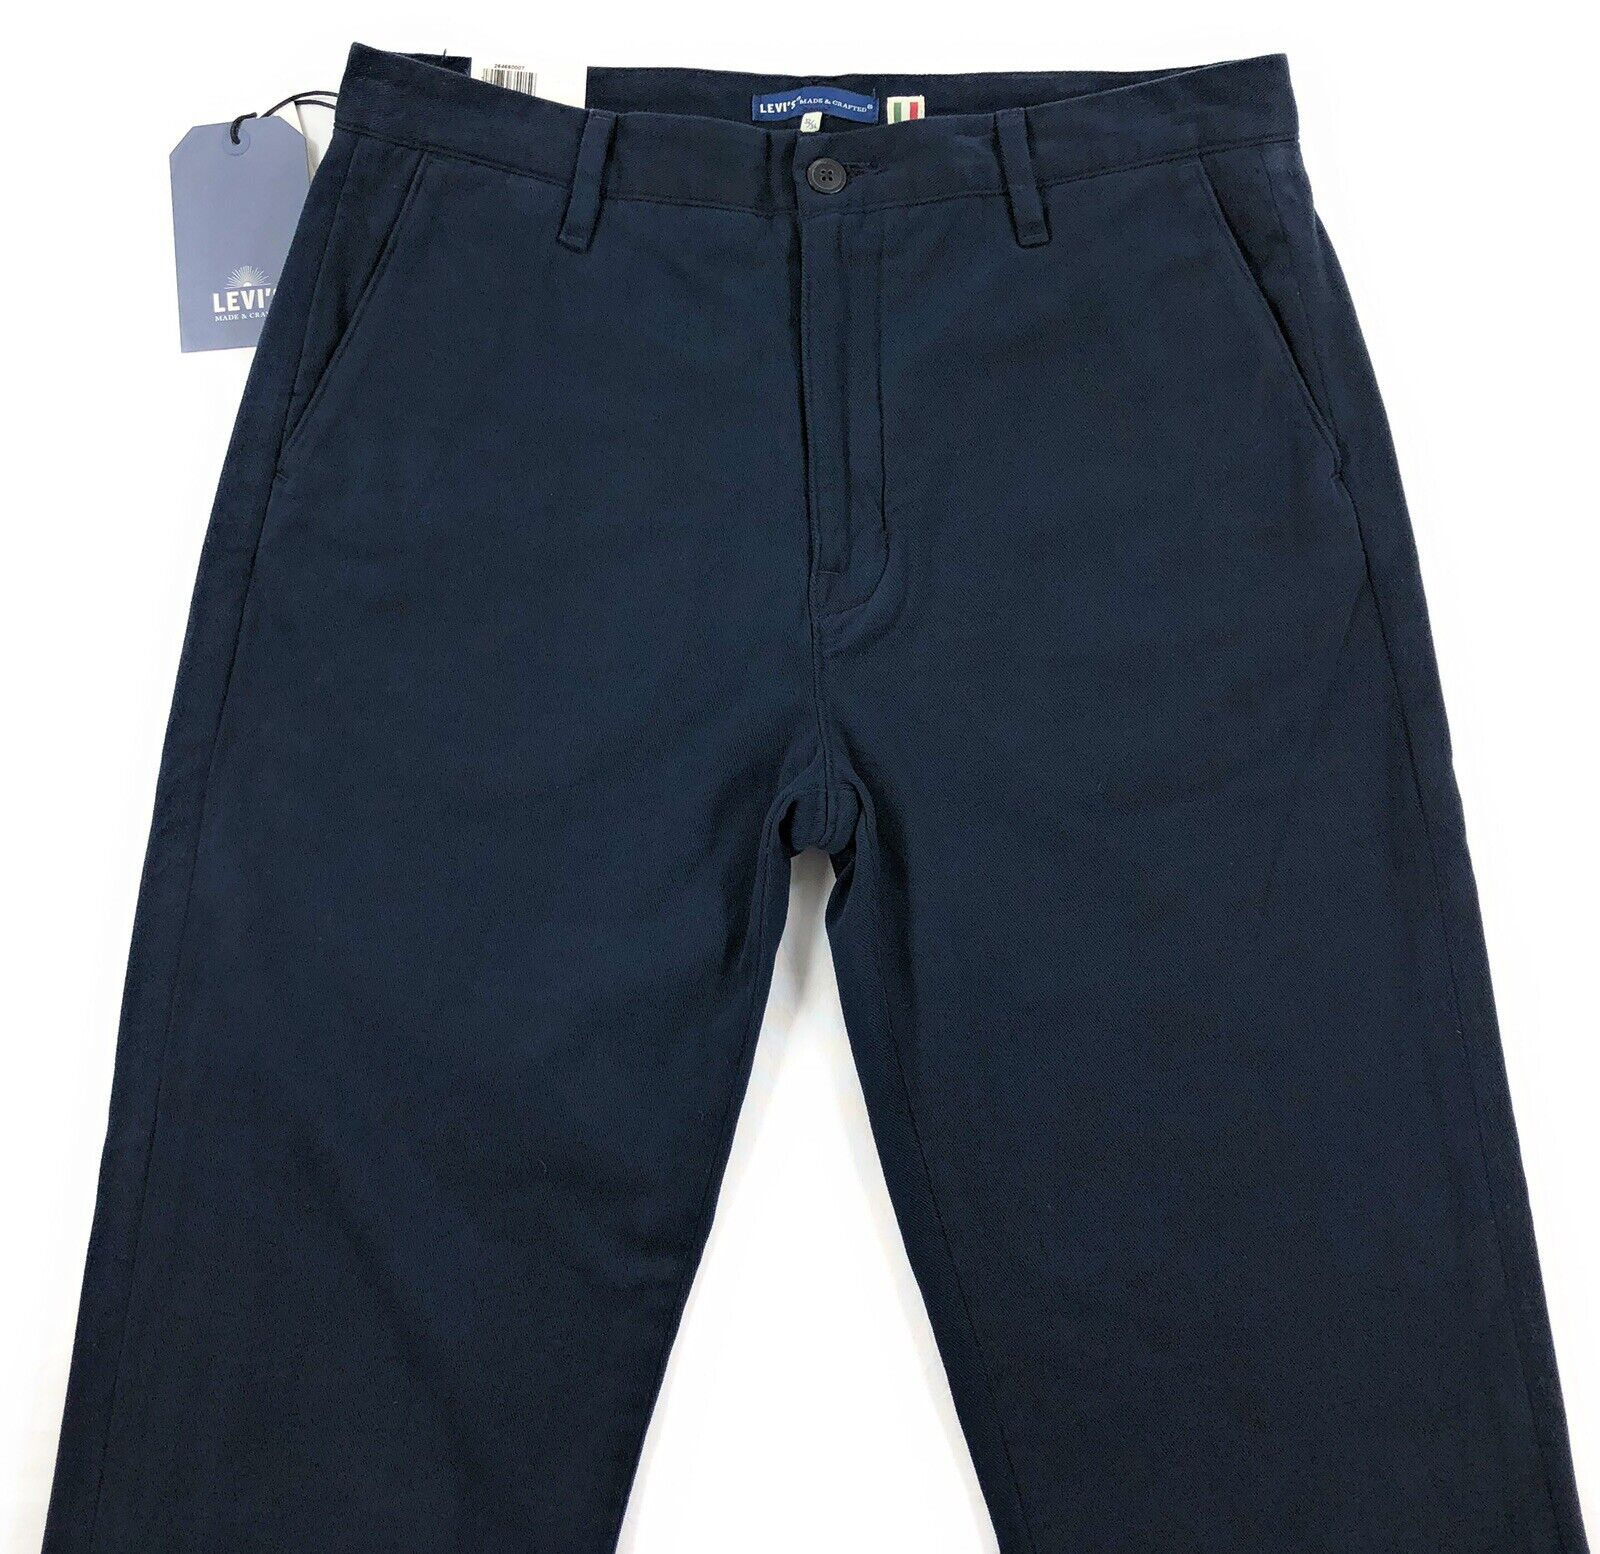 Levis Made & Crafted Chino Pants Mens 32x34 Slim Fit Italian